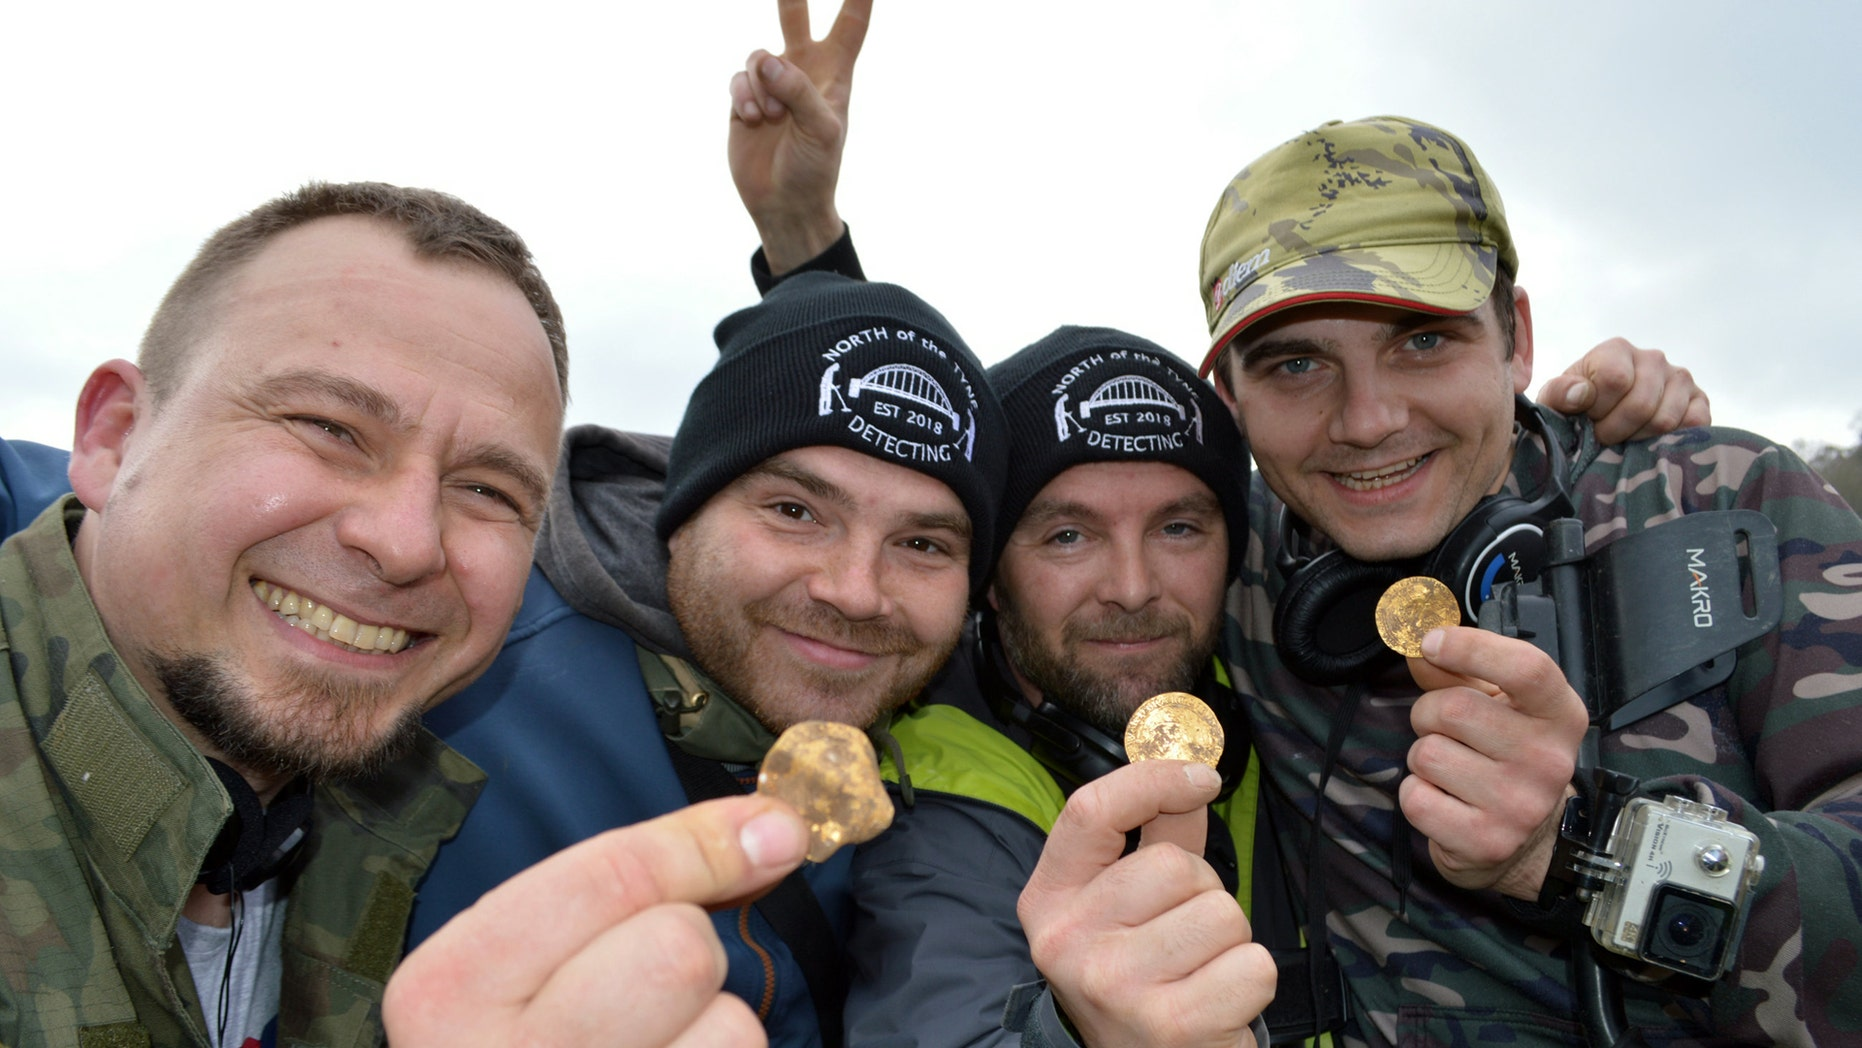 Dariusz Fijalkowski , Mateusz Nowak, Andrew Winter, Tobiasz Nowak. Four amateur metal detectorists have uncovered a hoard of 14th-century coins in a field in Hambleden, Buckinghamshire- worth an estimated £150,000. (Credit: SWNS)